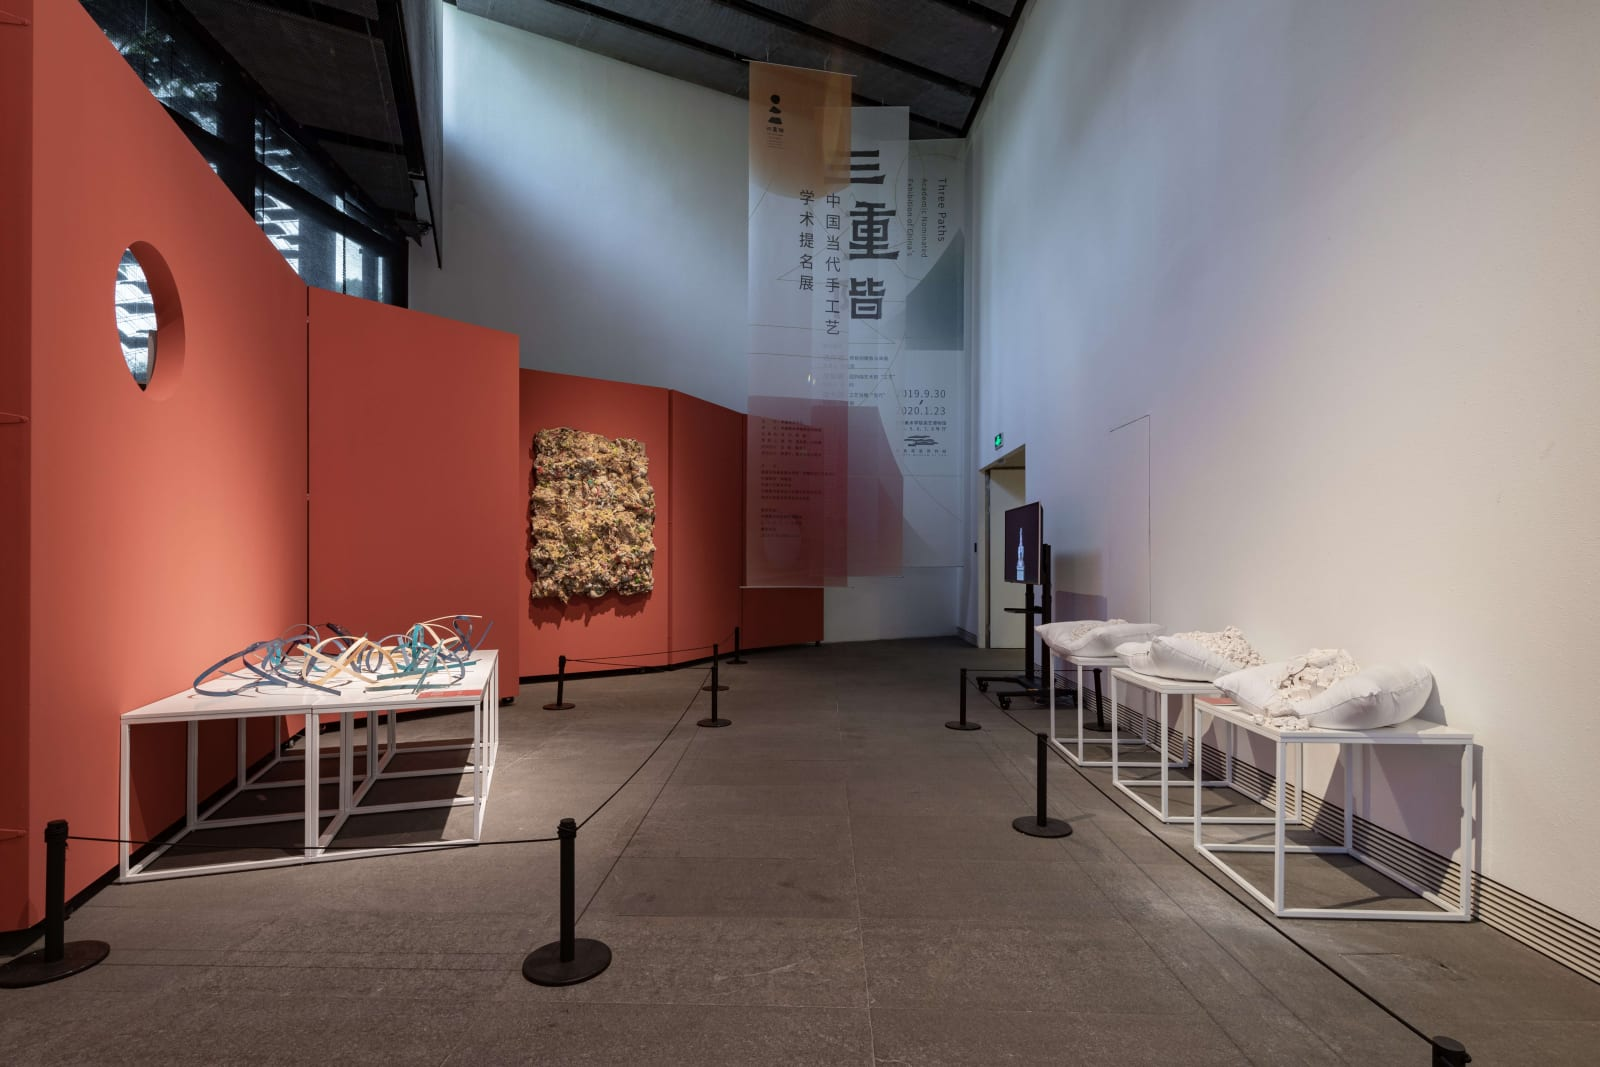 Three Paths: Academic Nominated Exhibition of China's Contemporary Crafts